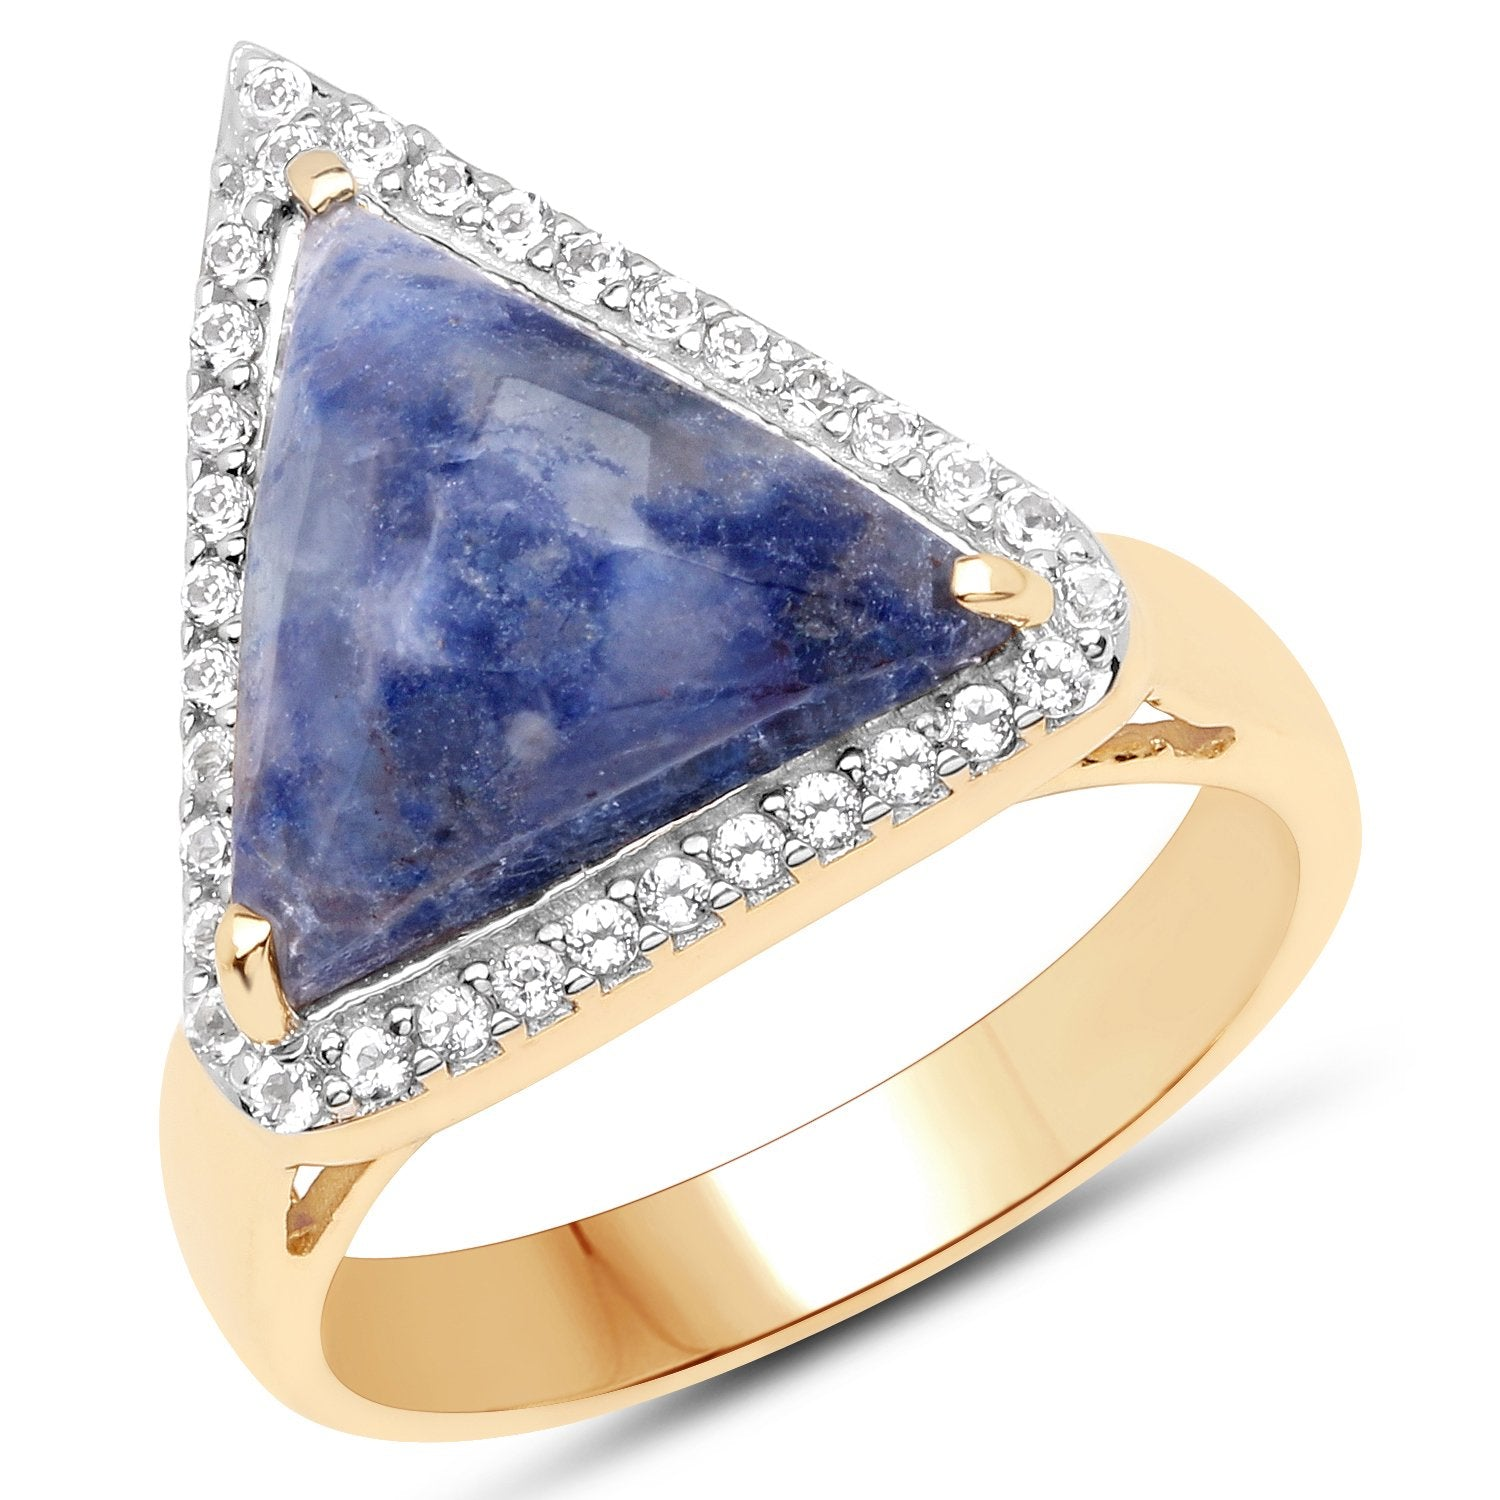 LoveHuang 8.61 Carats Genuine Blue Aventurine and White Topaz Triangle Ring Solid .925 Sterling Silver With 18KT Yellow Gold Plating